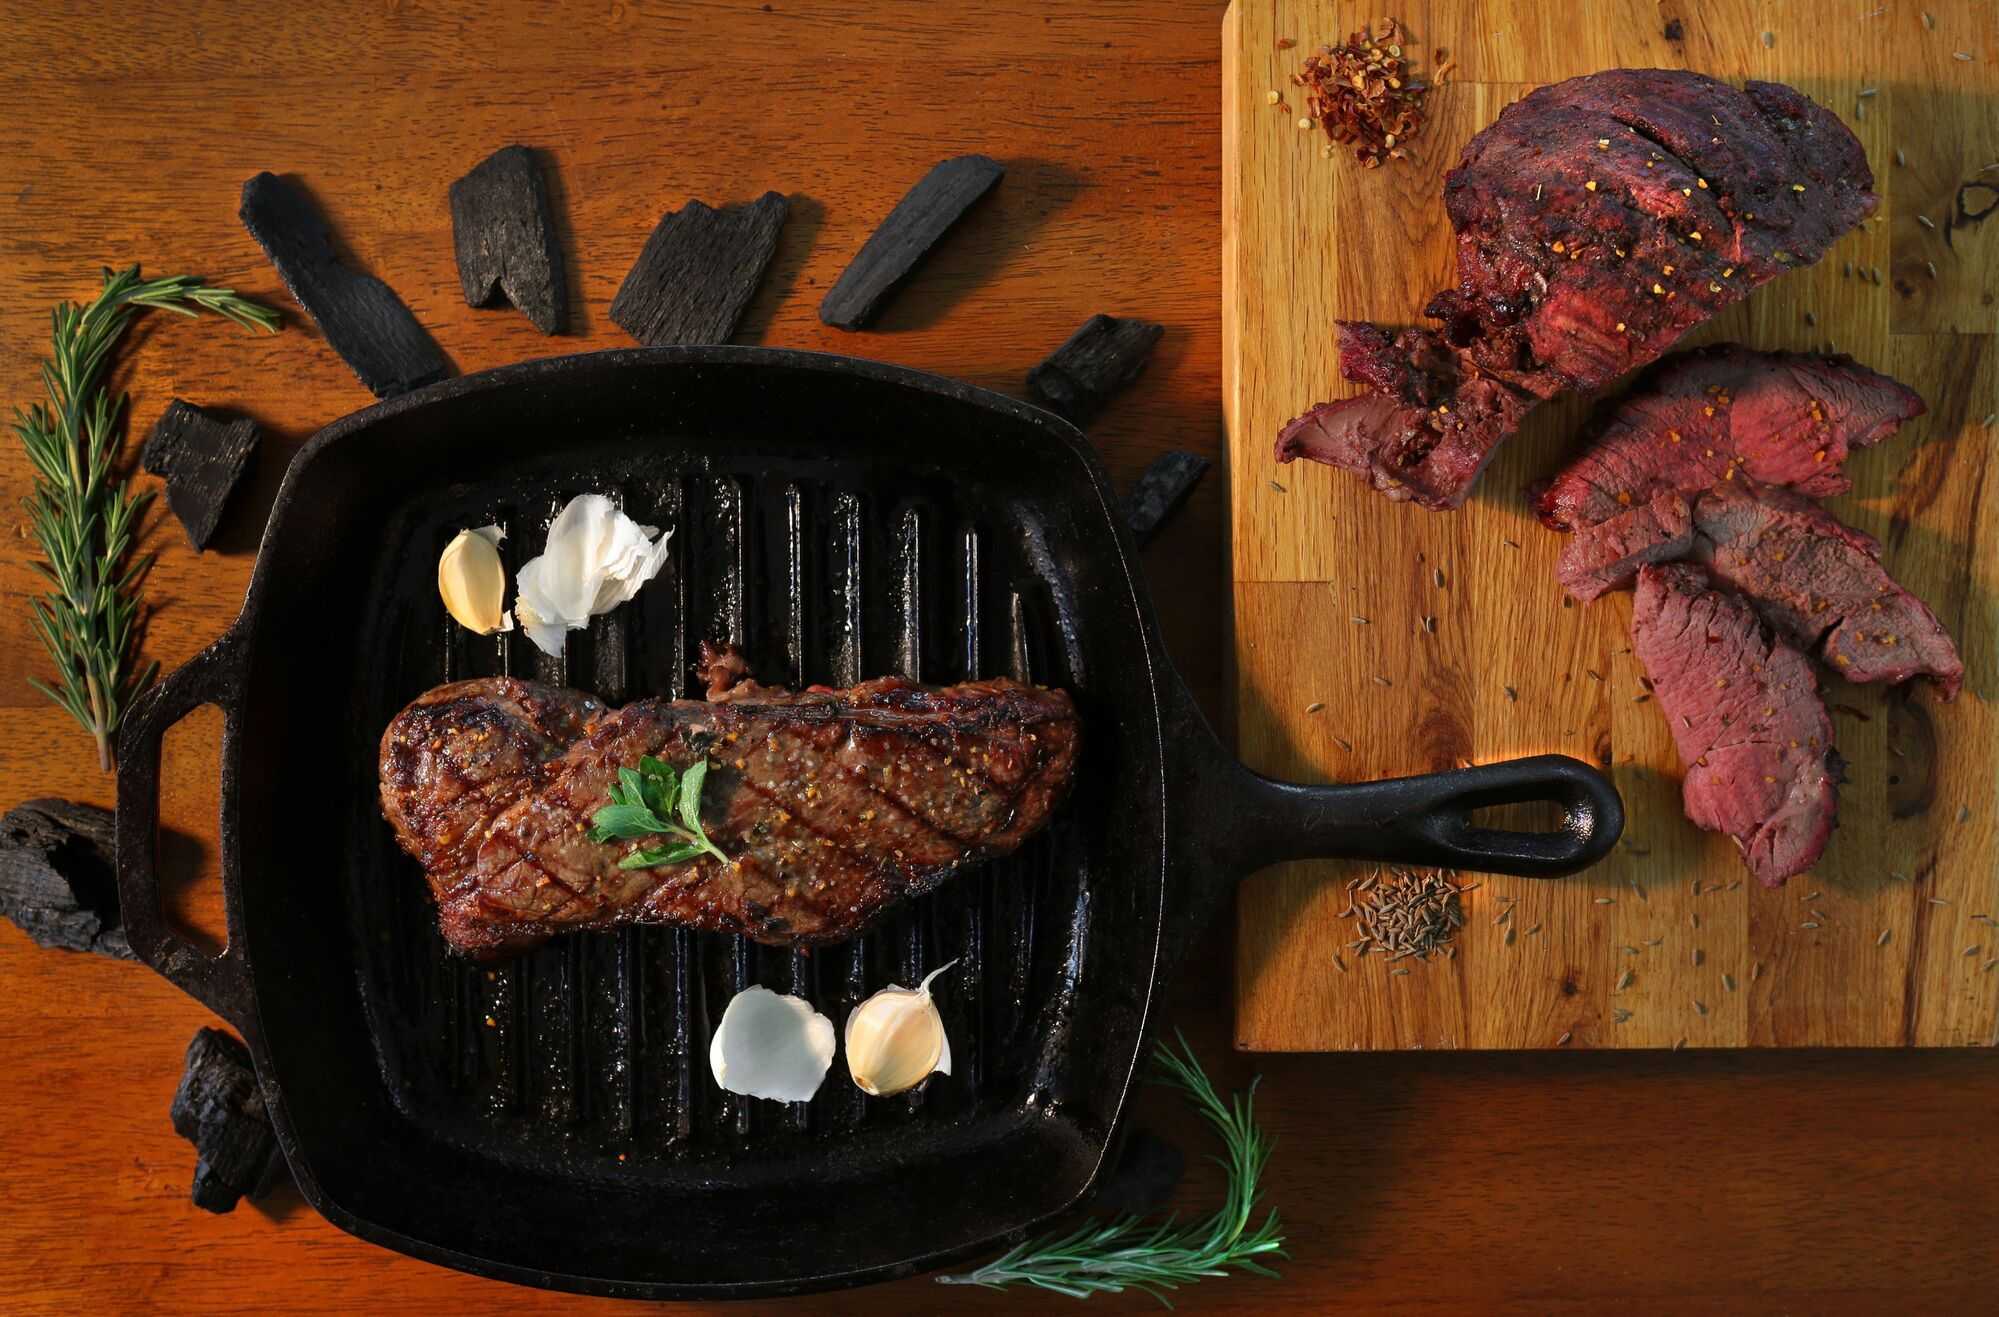 Grilling season is here. Some grilling foods for menu include Terrorized Steak and Mediterranean Lamb.